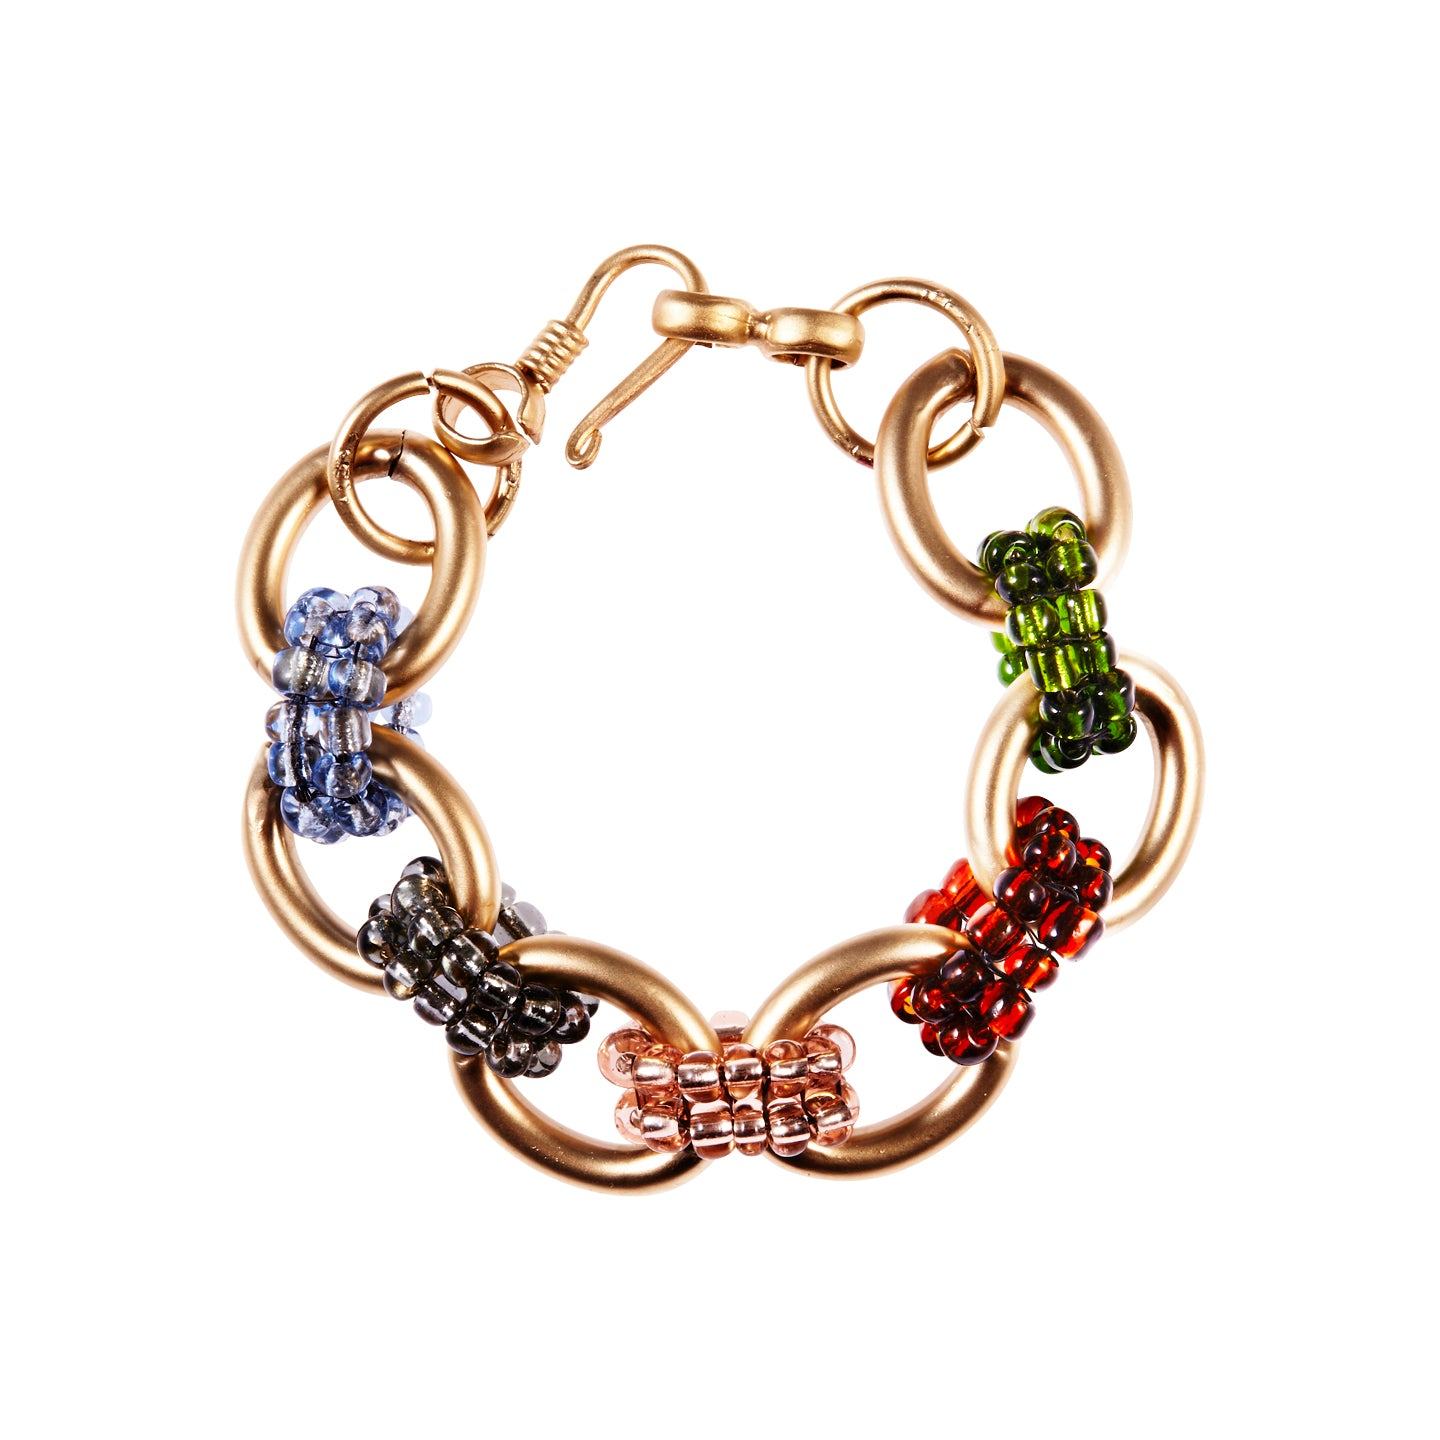 Grosso Beaded Bracelet